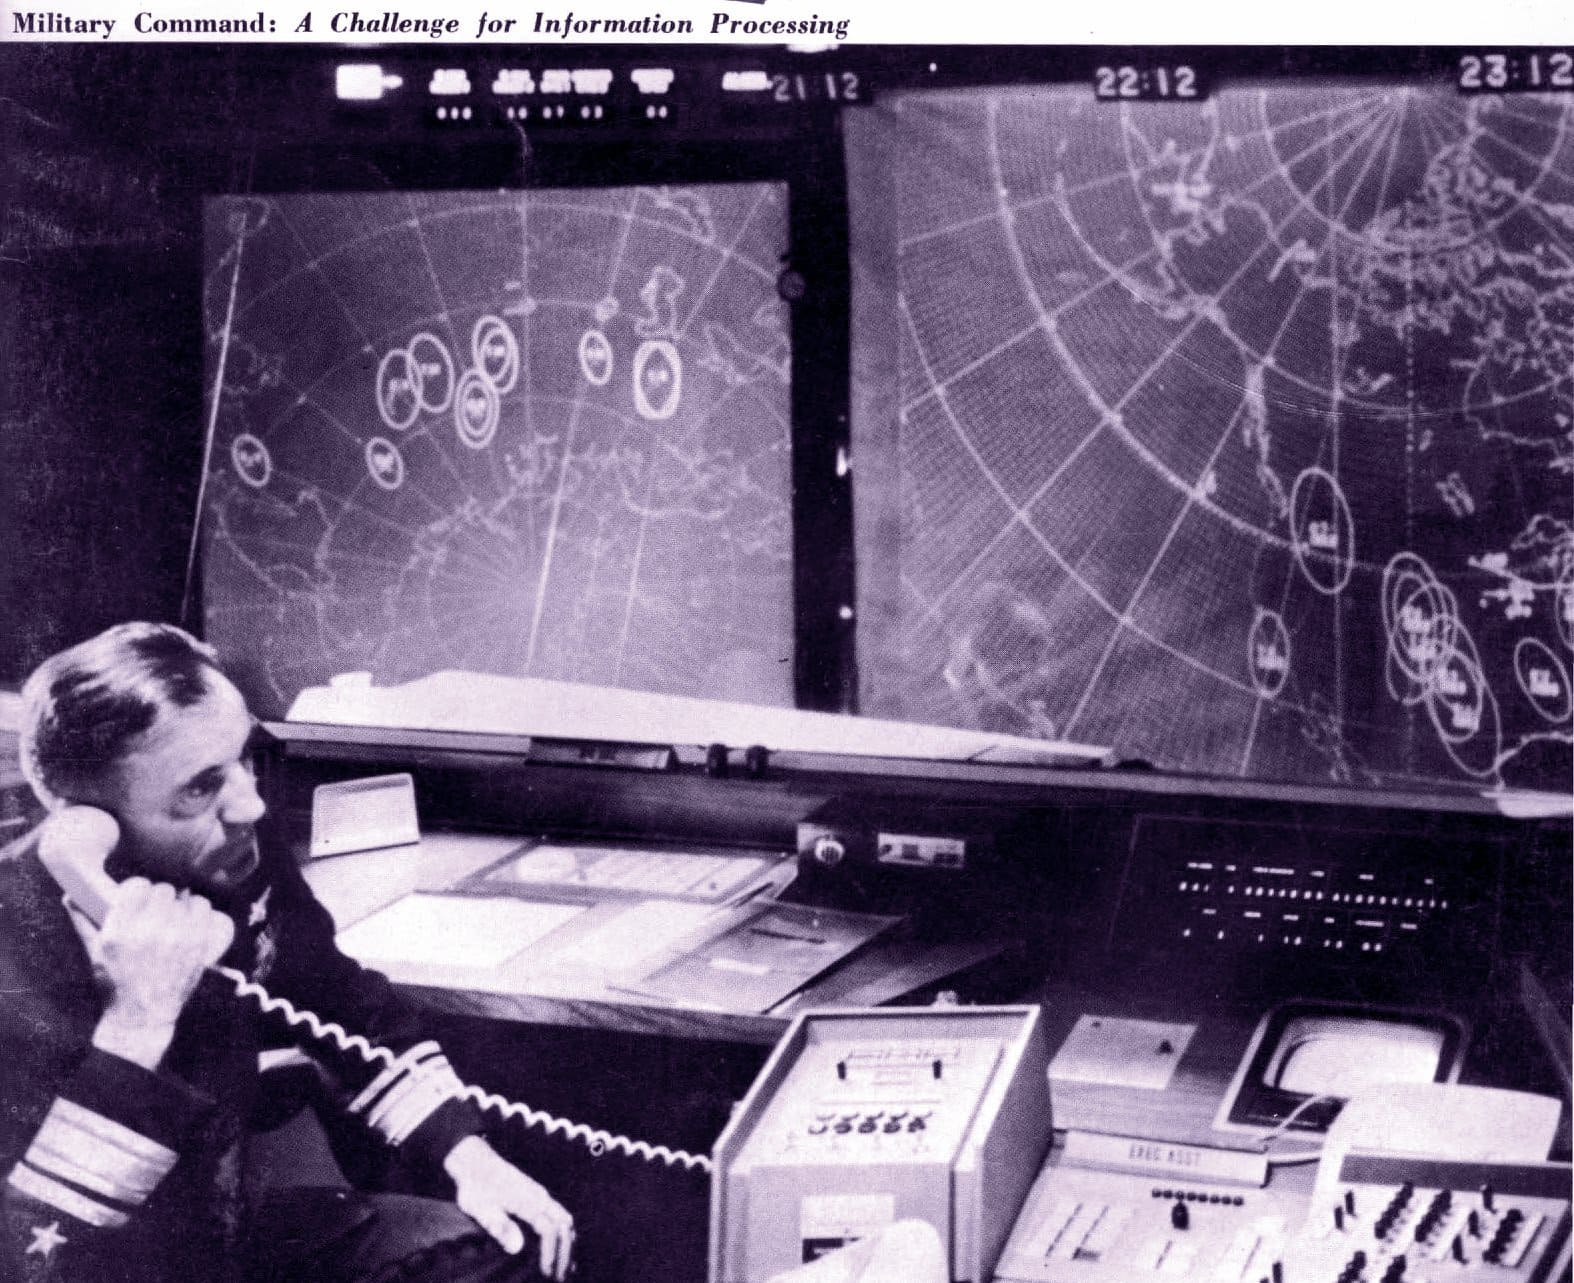 Computers at US military command (1963)